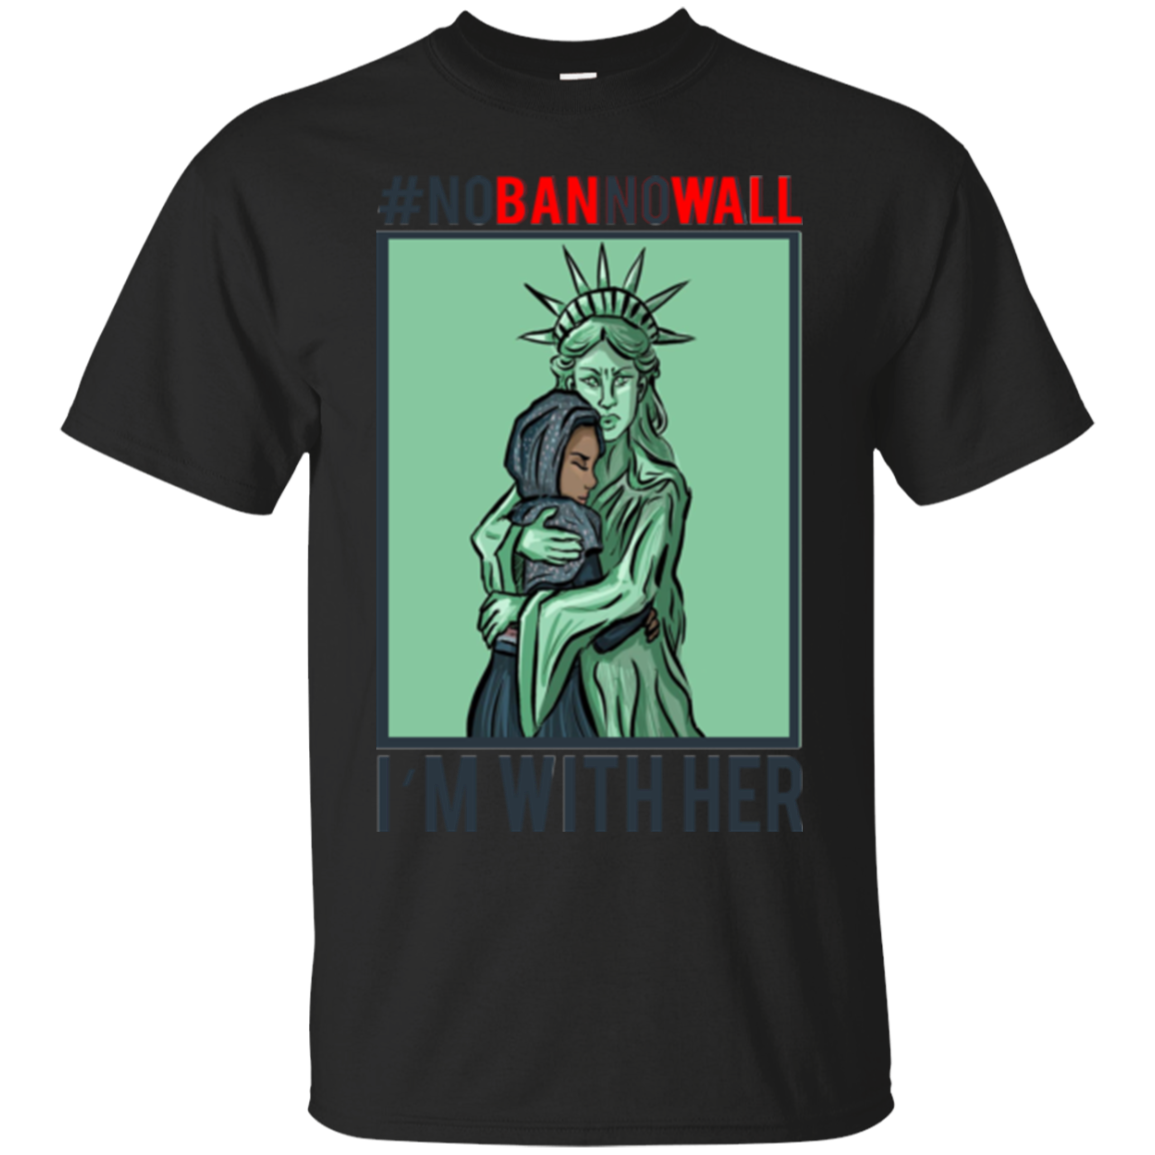 #Nobanonwall I'm With Her Hillary Clinton Shirts